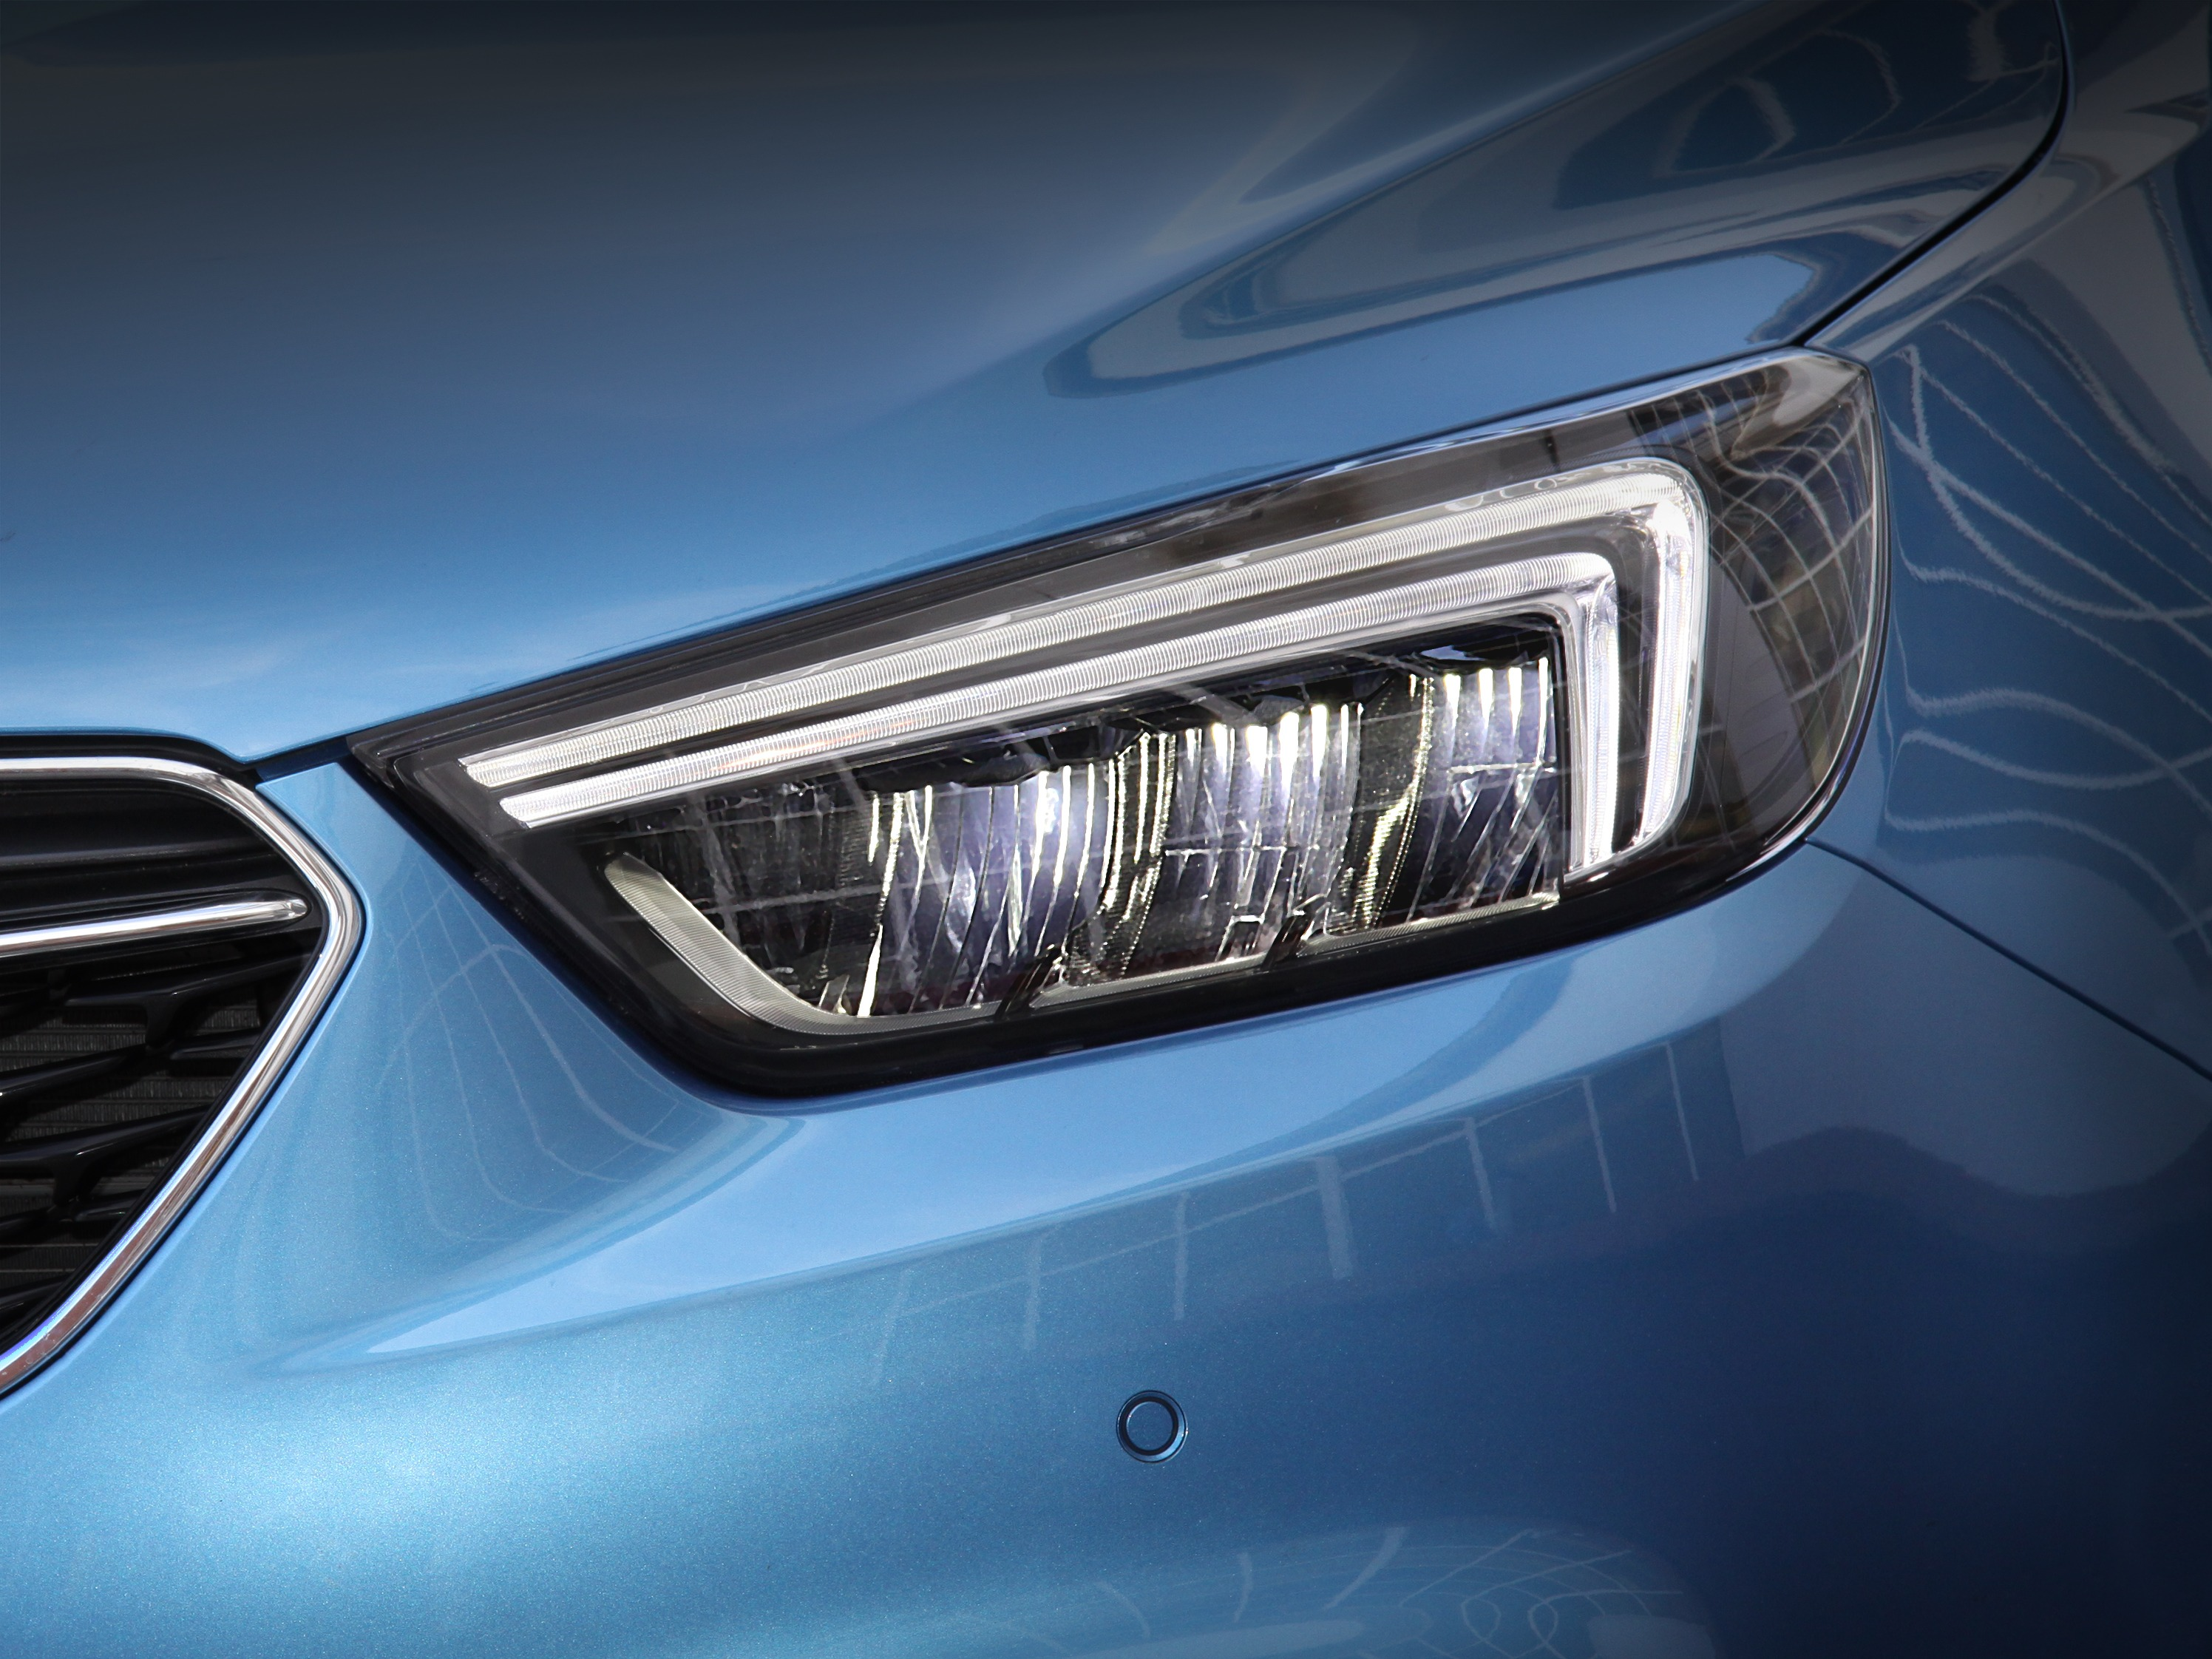 Opel-Mokka-X-Full-LED-Headlamps-302206.jpg